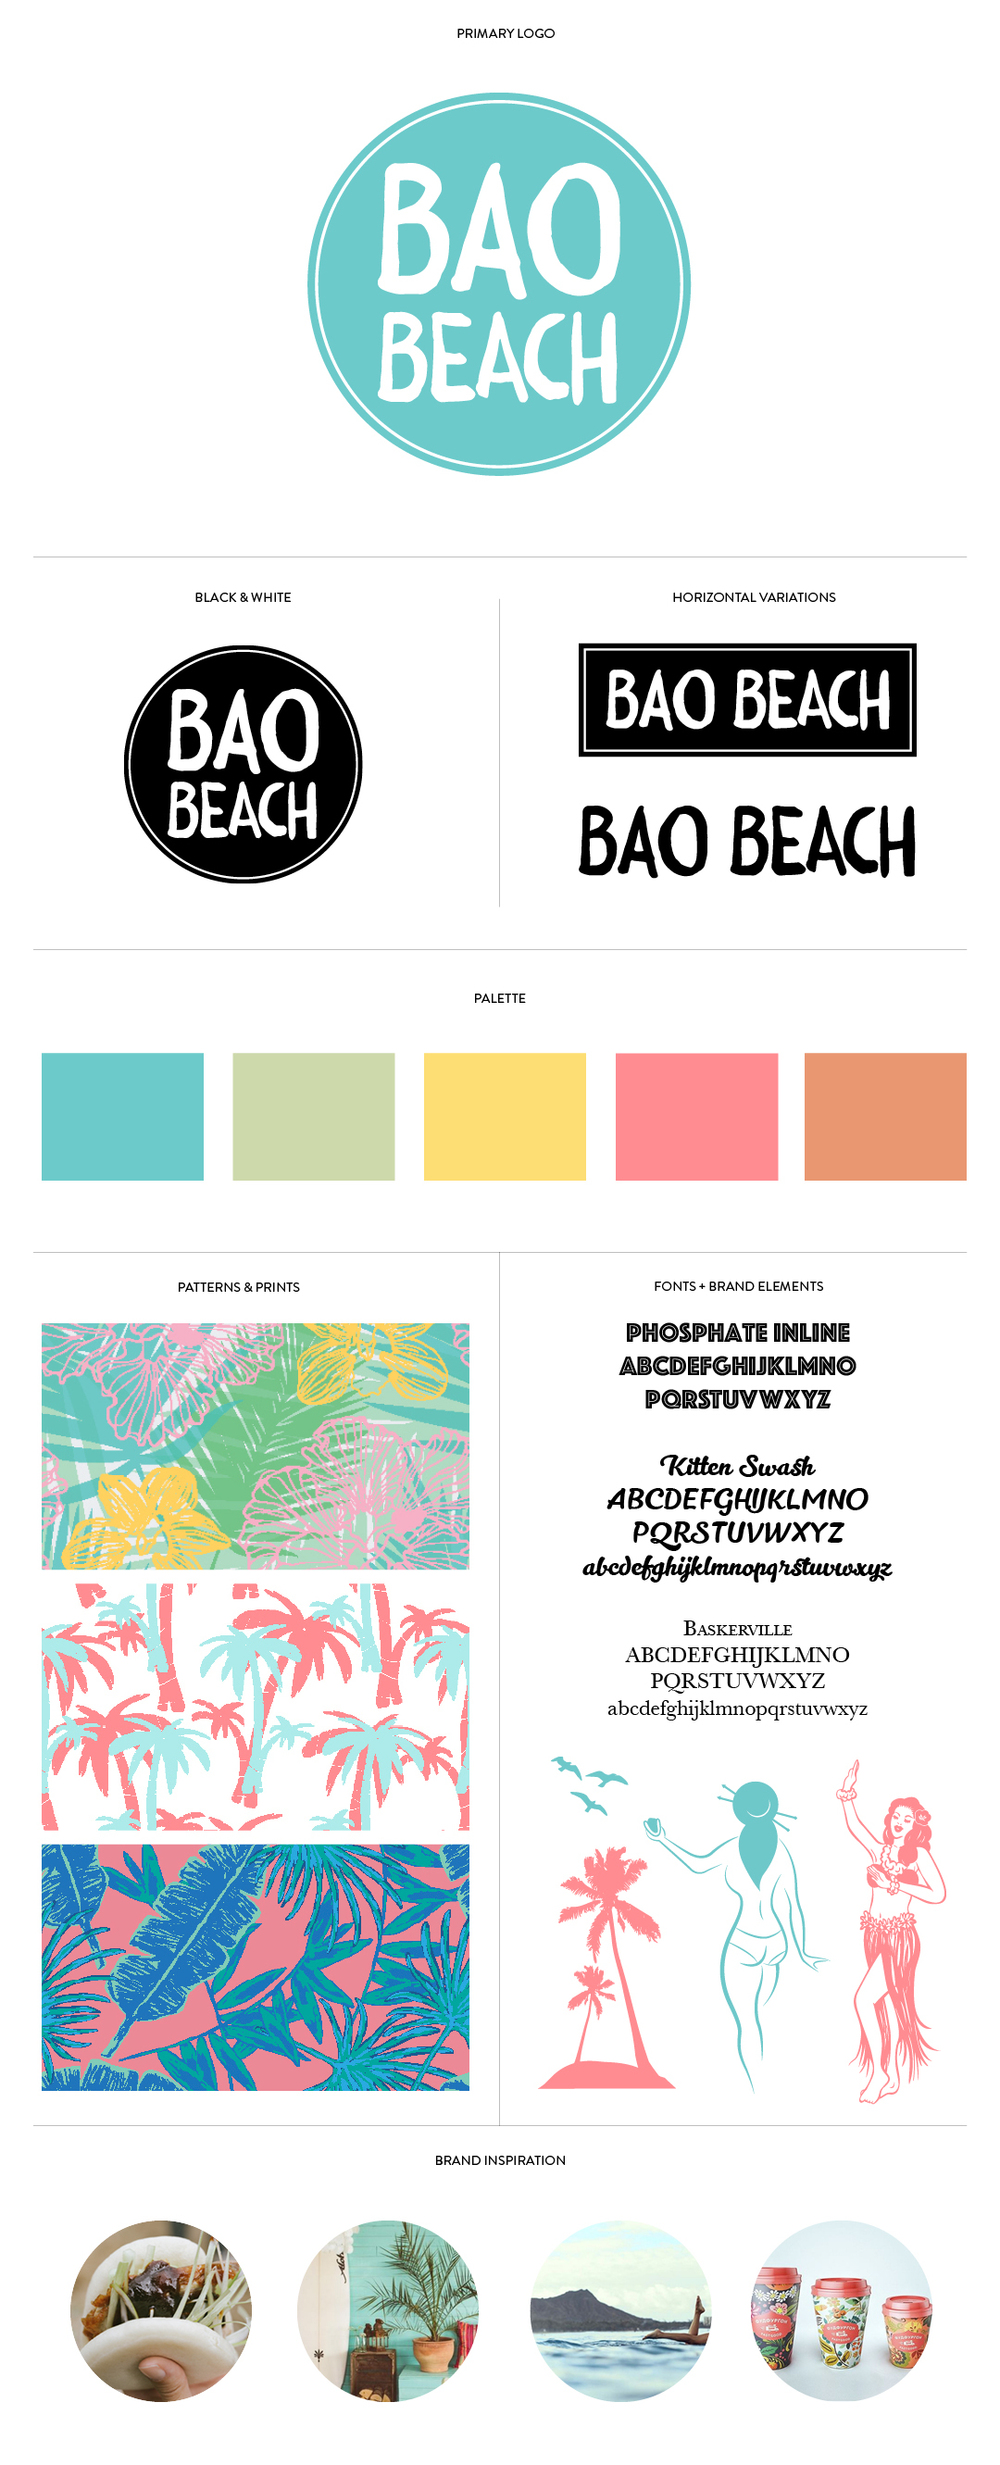 bao beach final branding.jpeg